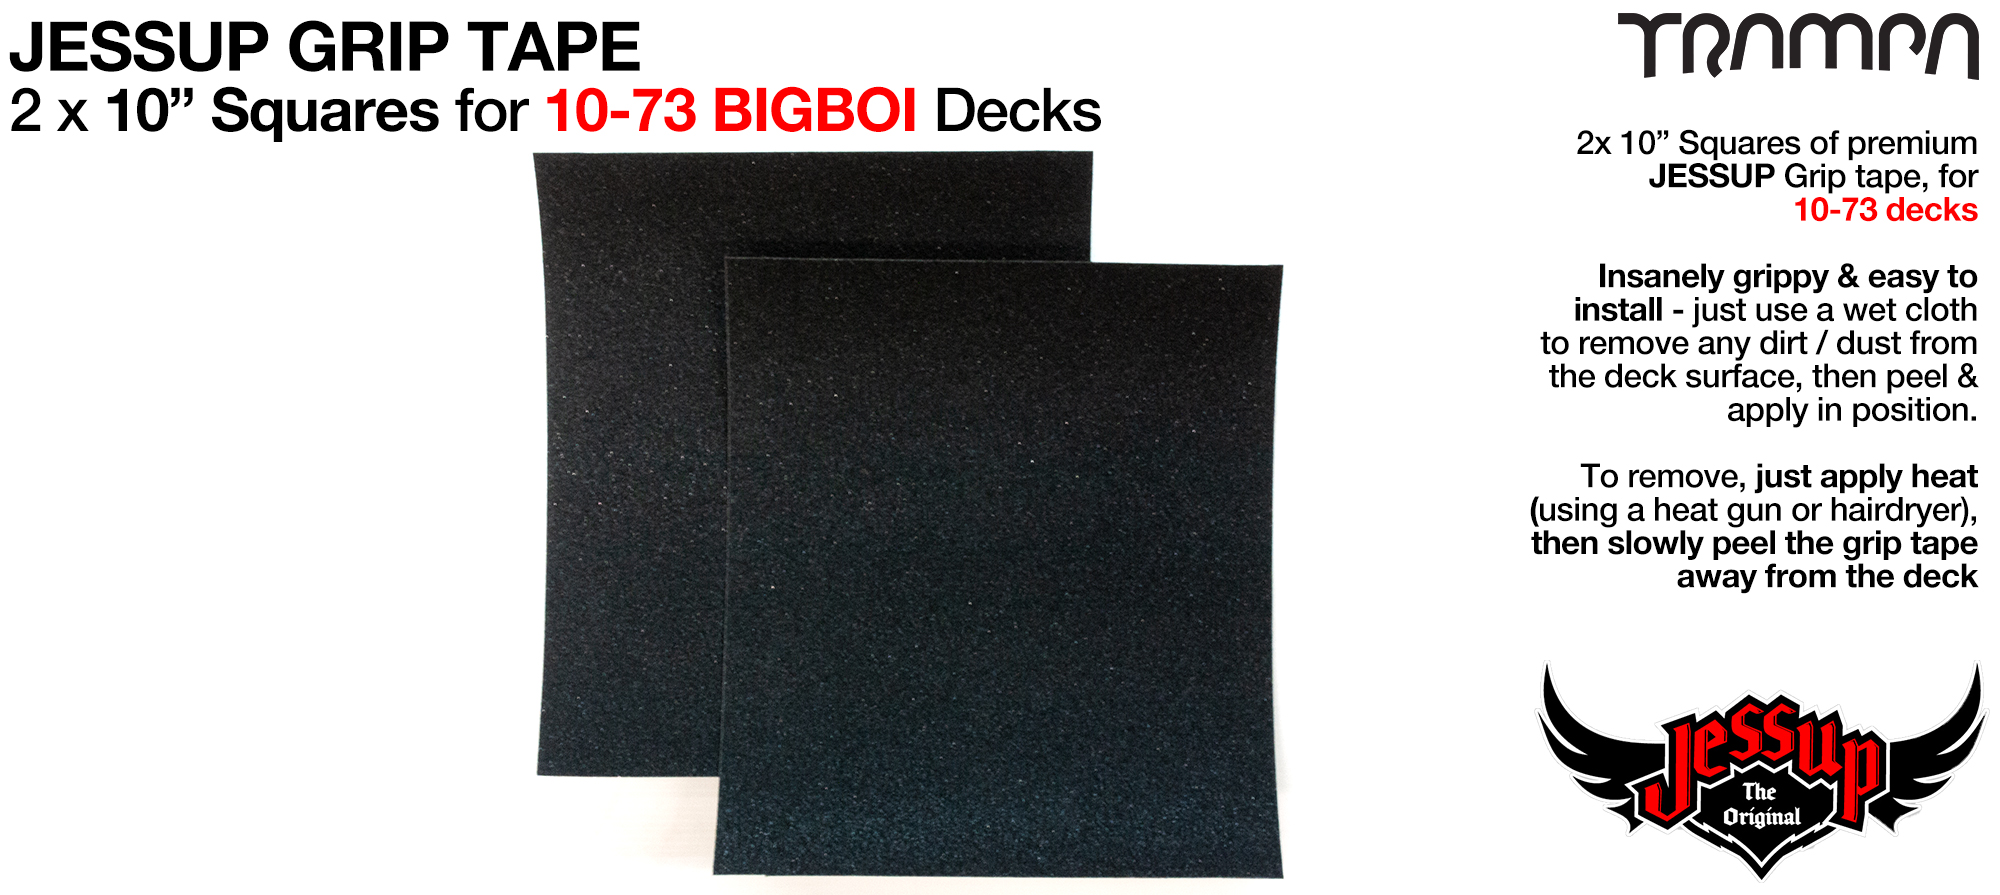 Grip tape - 2 x 10 inch squares for 10-73 Decks - Jessup